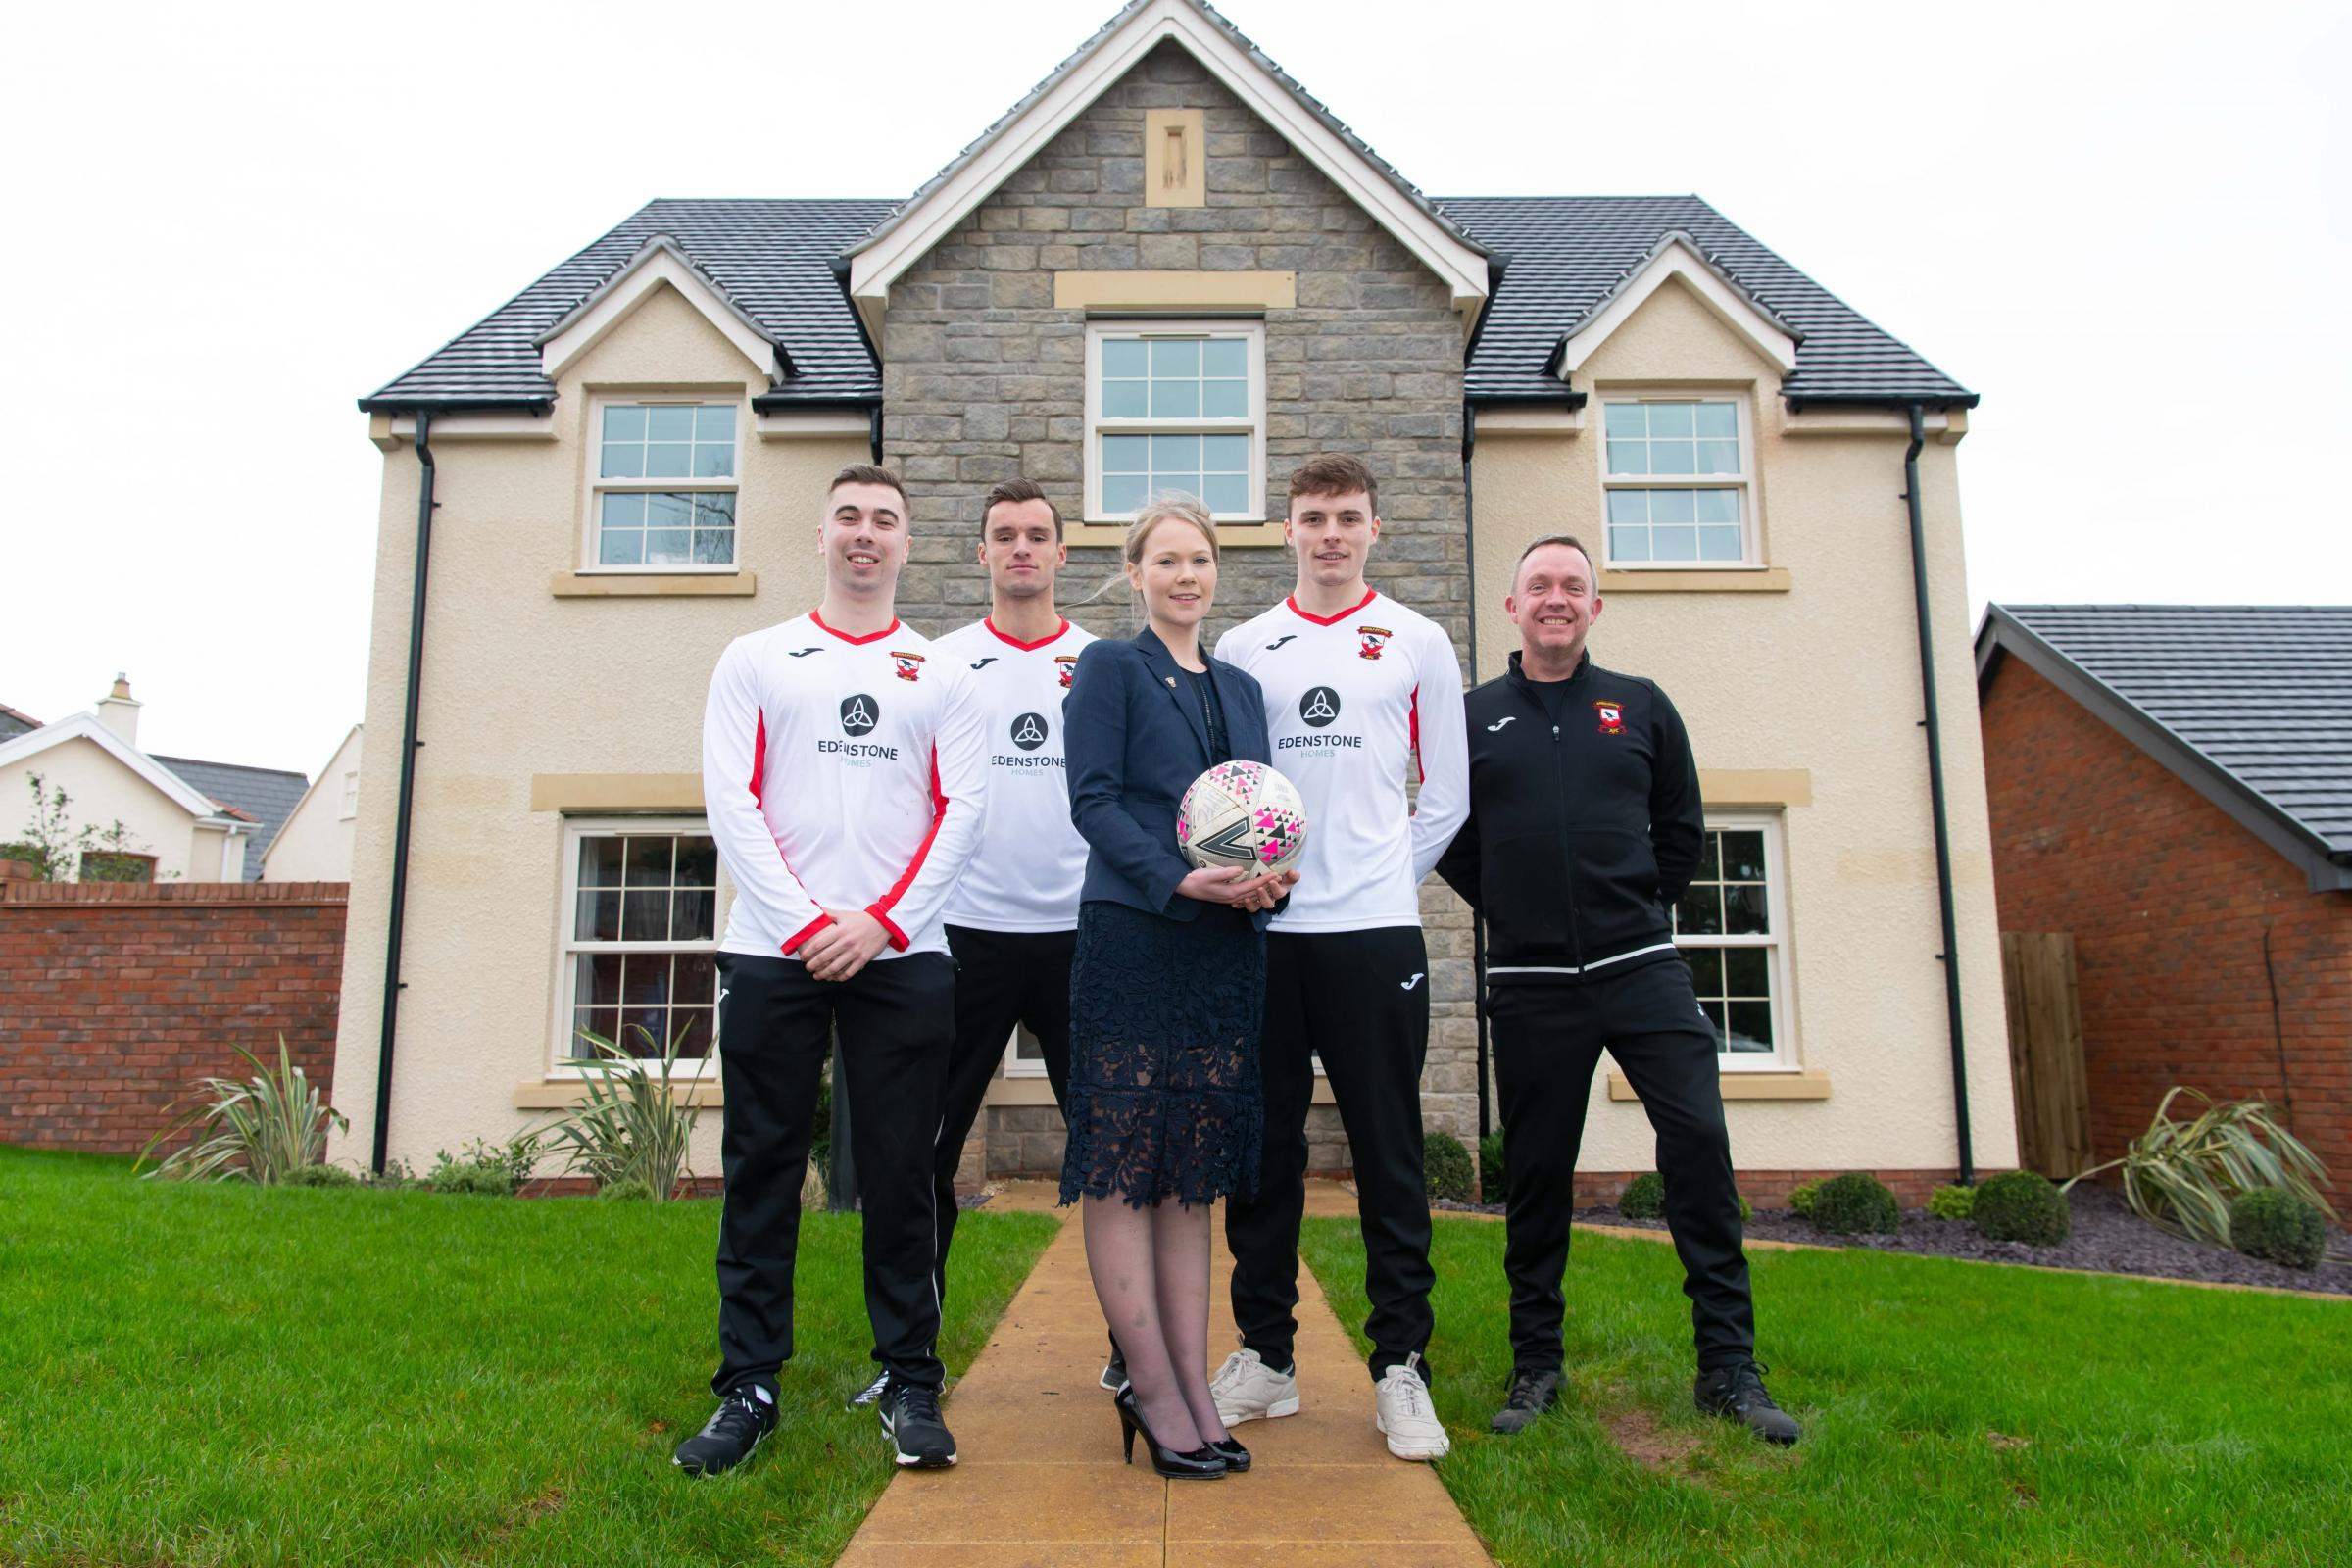 Jennifer Hayes is pictured at The Woodlands with Calum Driscoll, Harry Driscoll,  Kieran McCarthy and Rob Bloxham